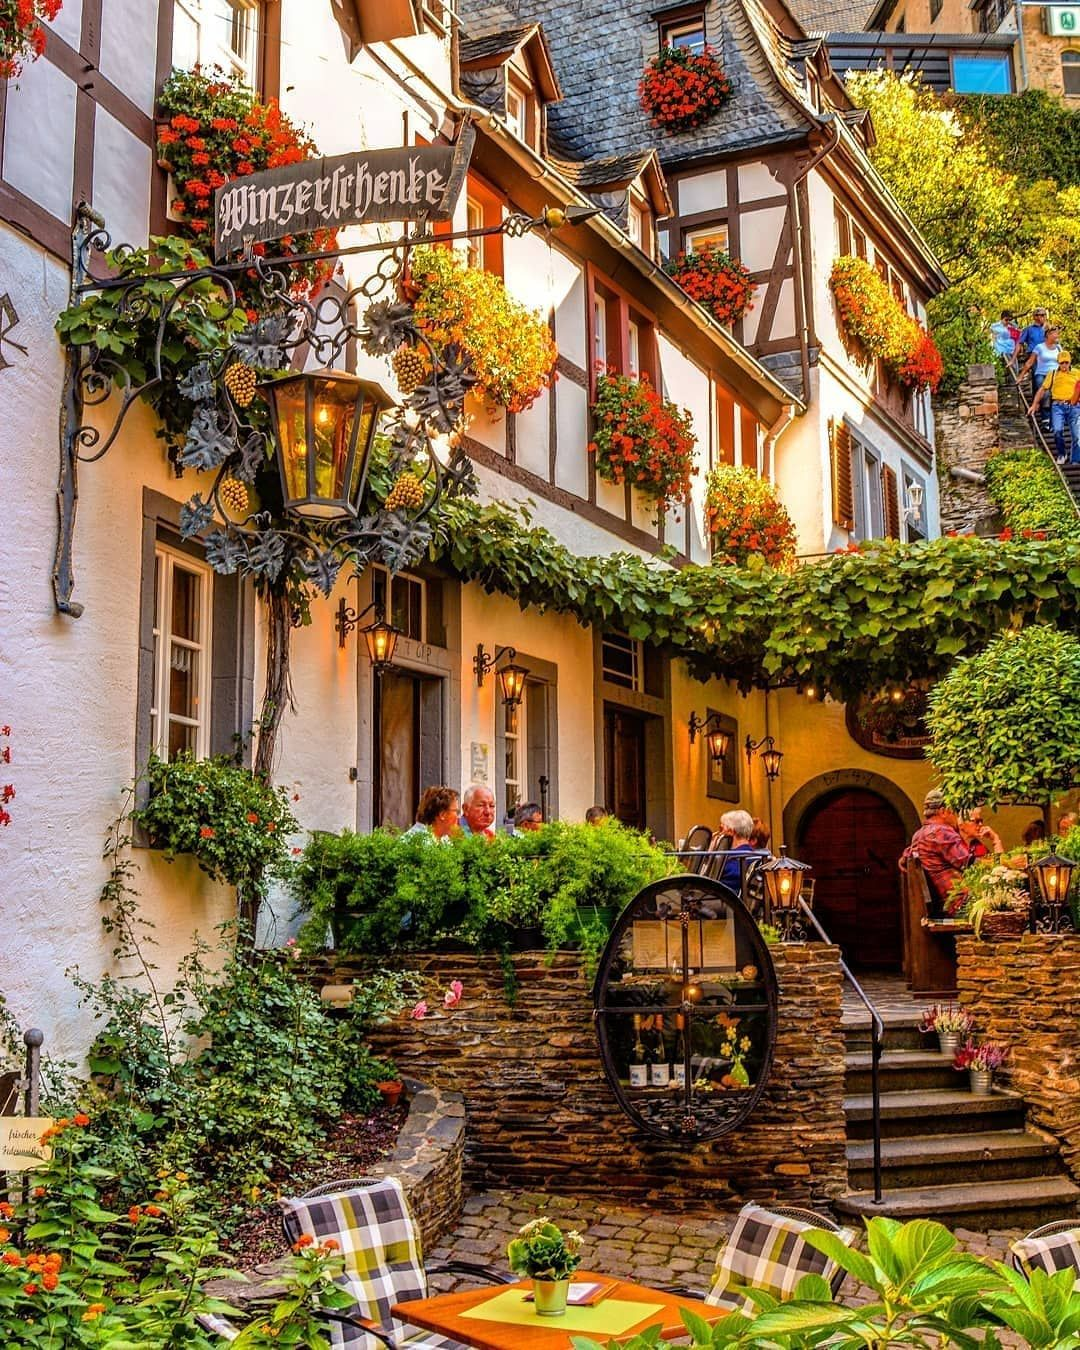 Beilstein, RheinlandPfalz, Germany Cool places to visit